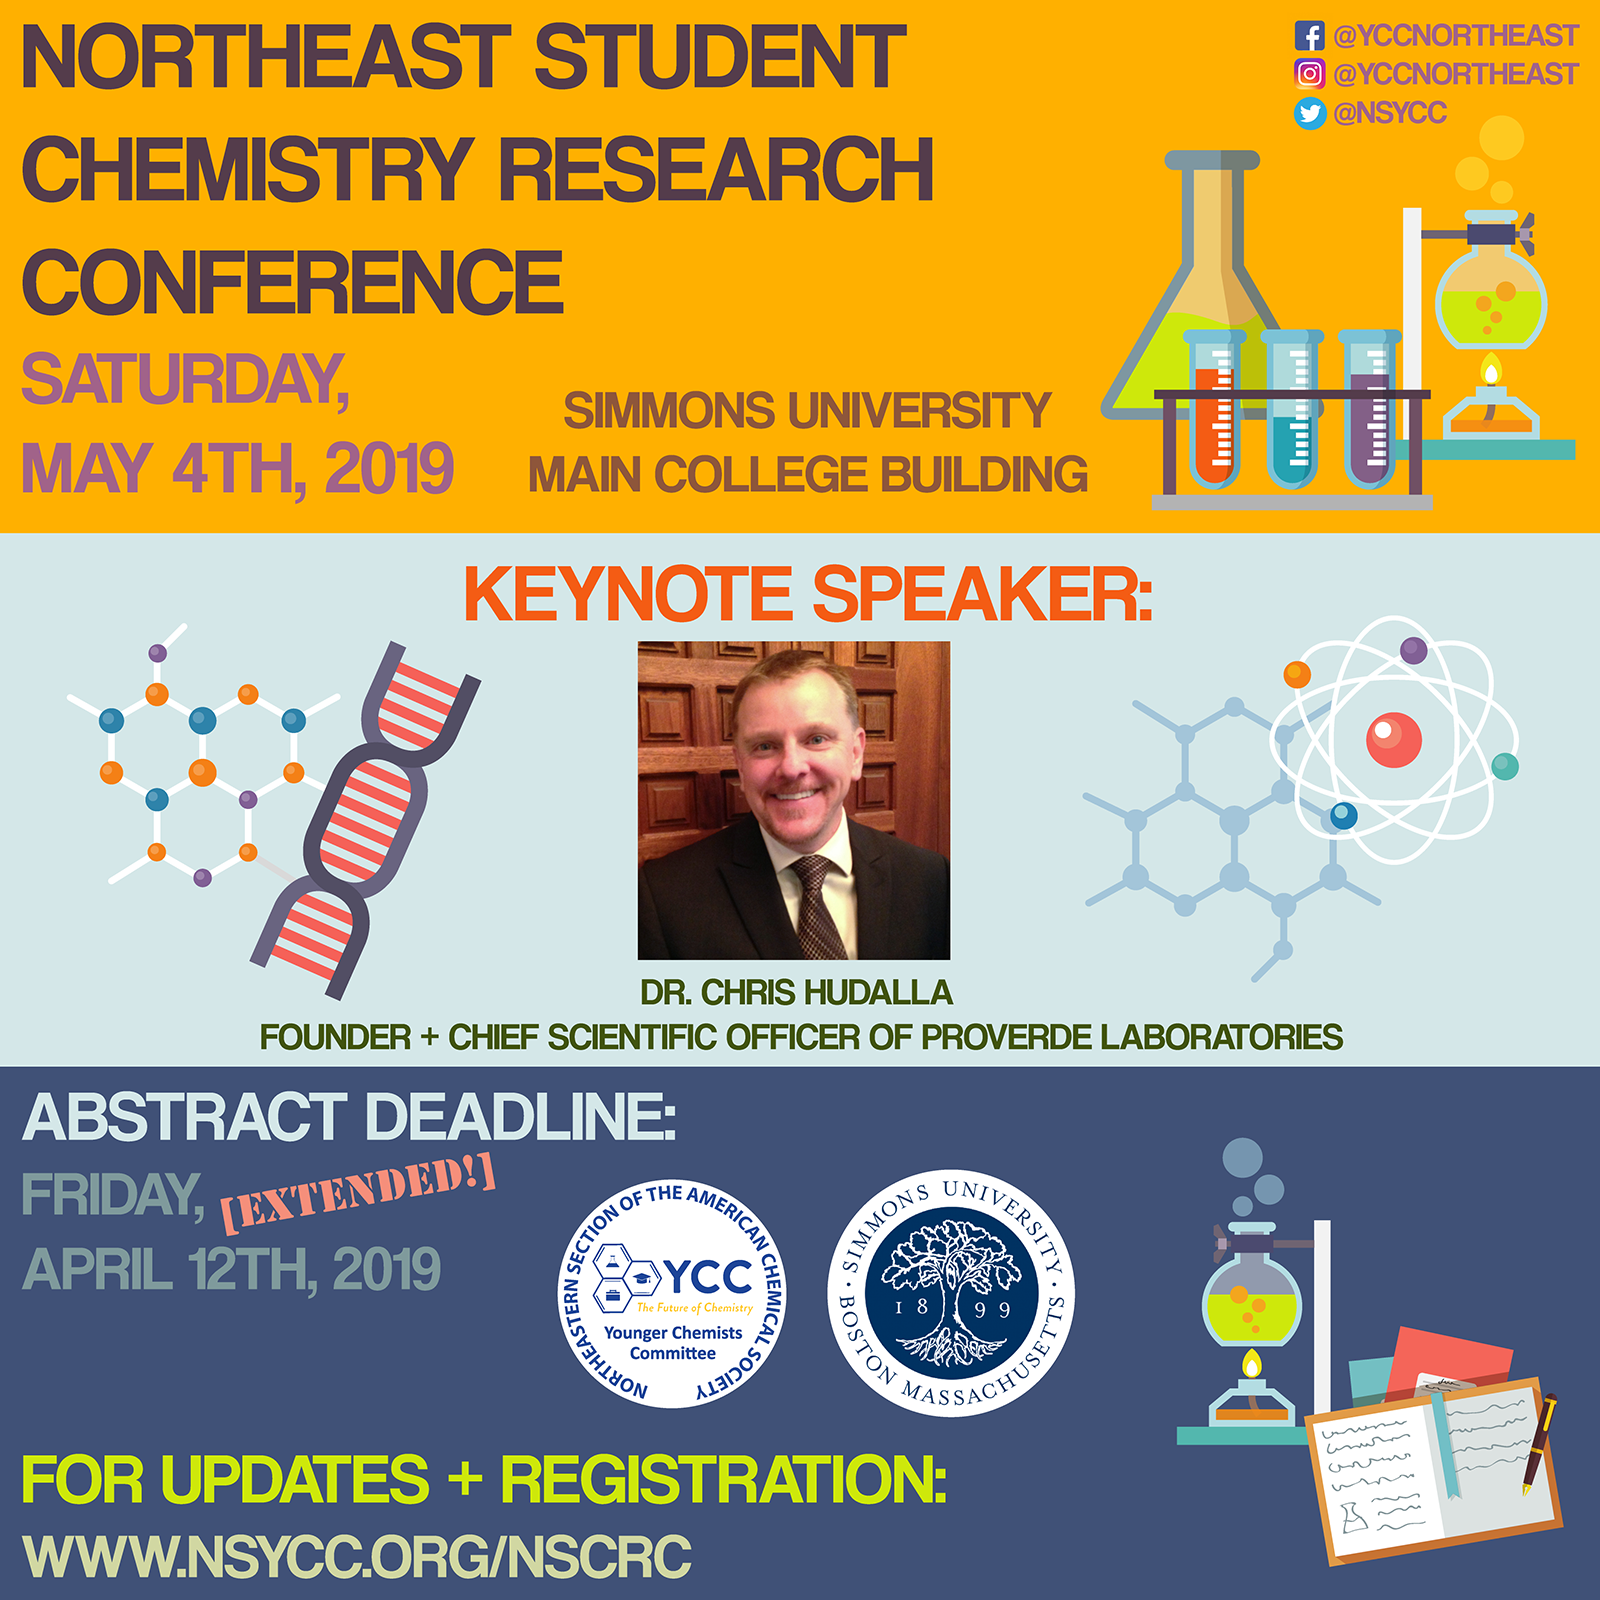 2019 Northeast Student Chemistry Research Conference Simmons University May 2019